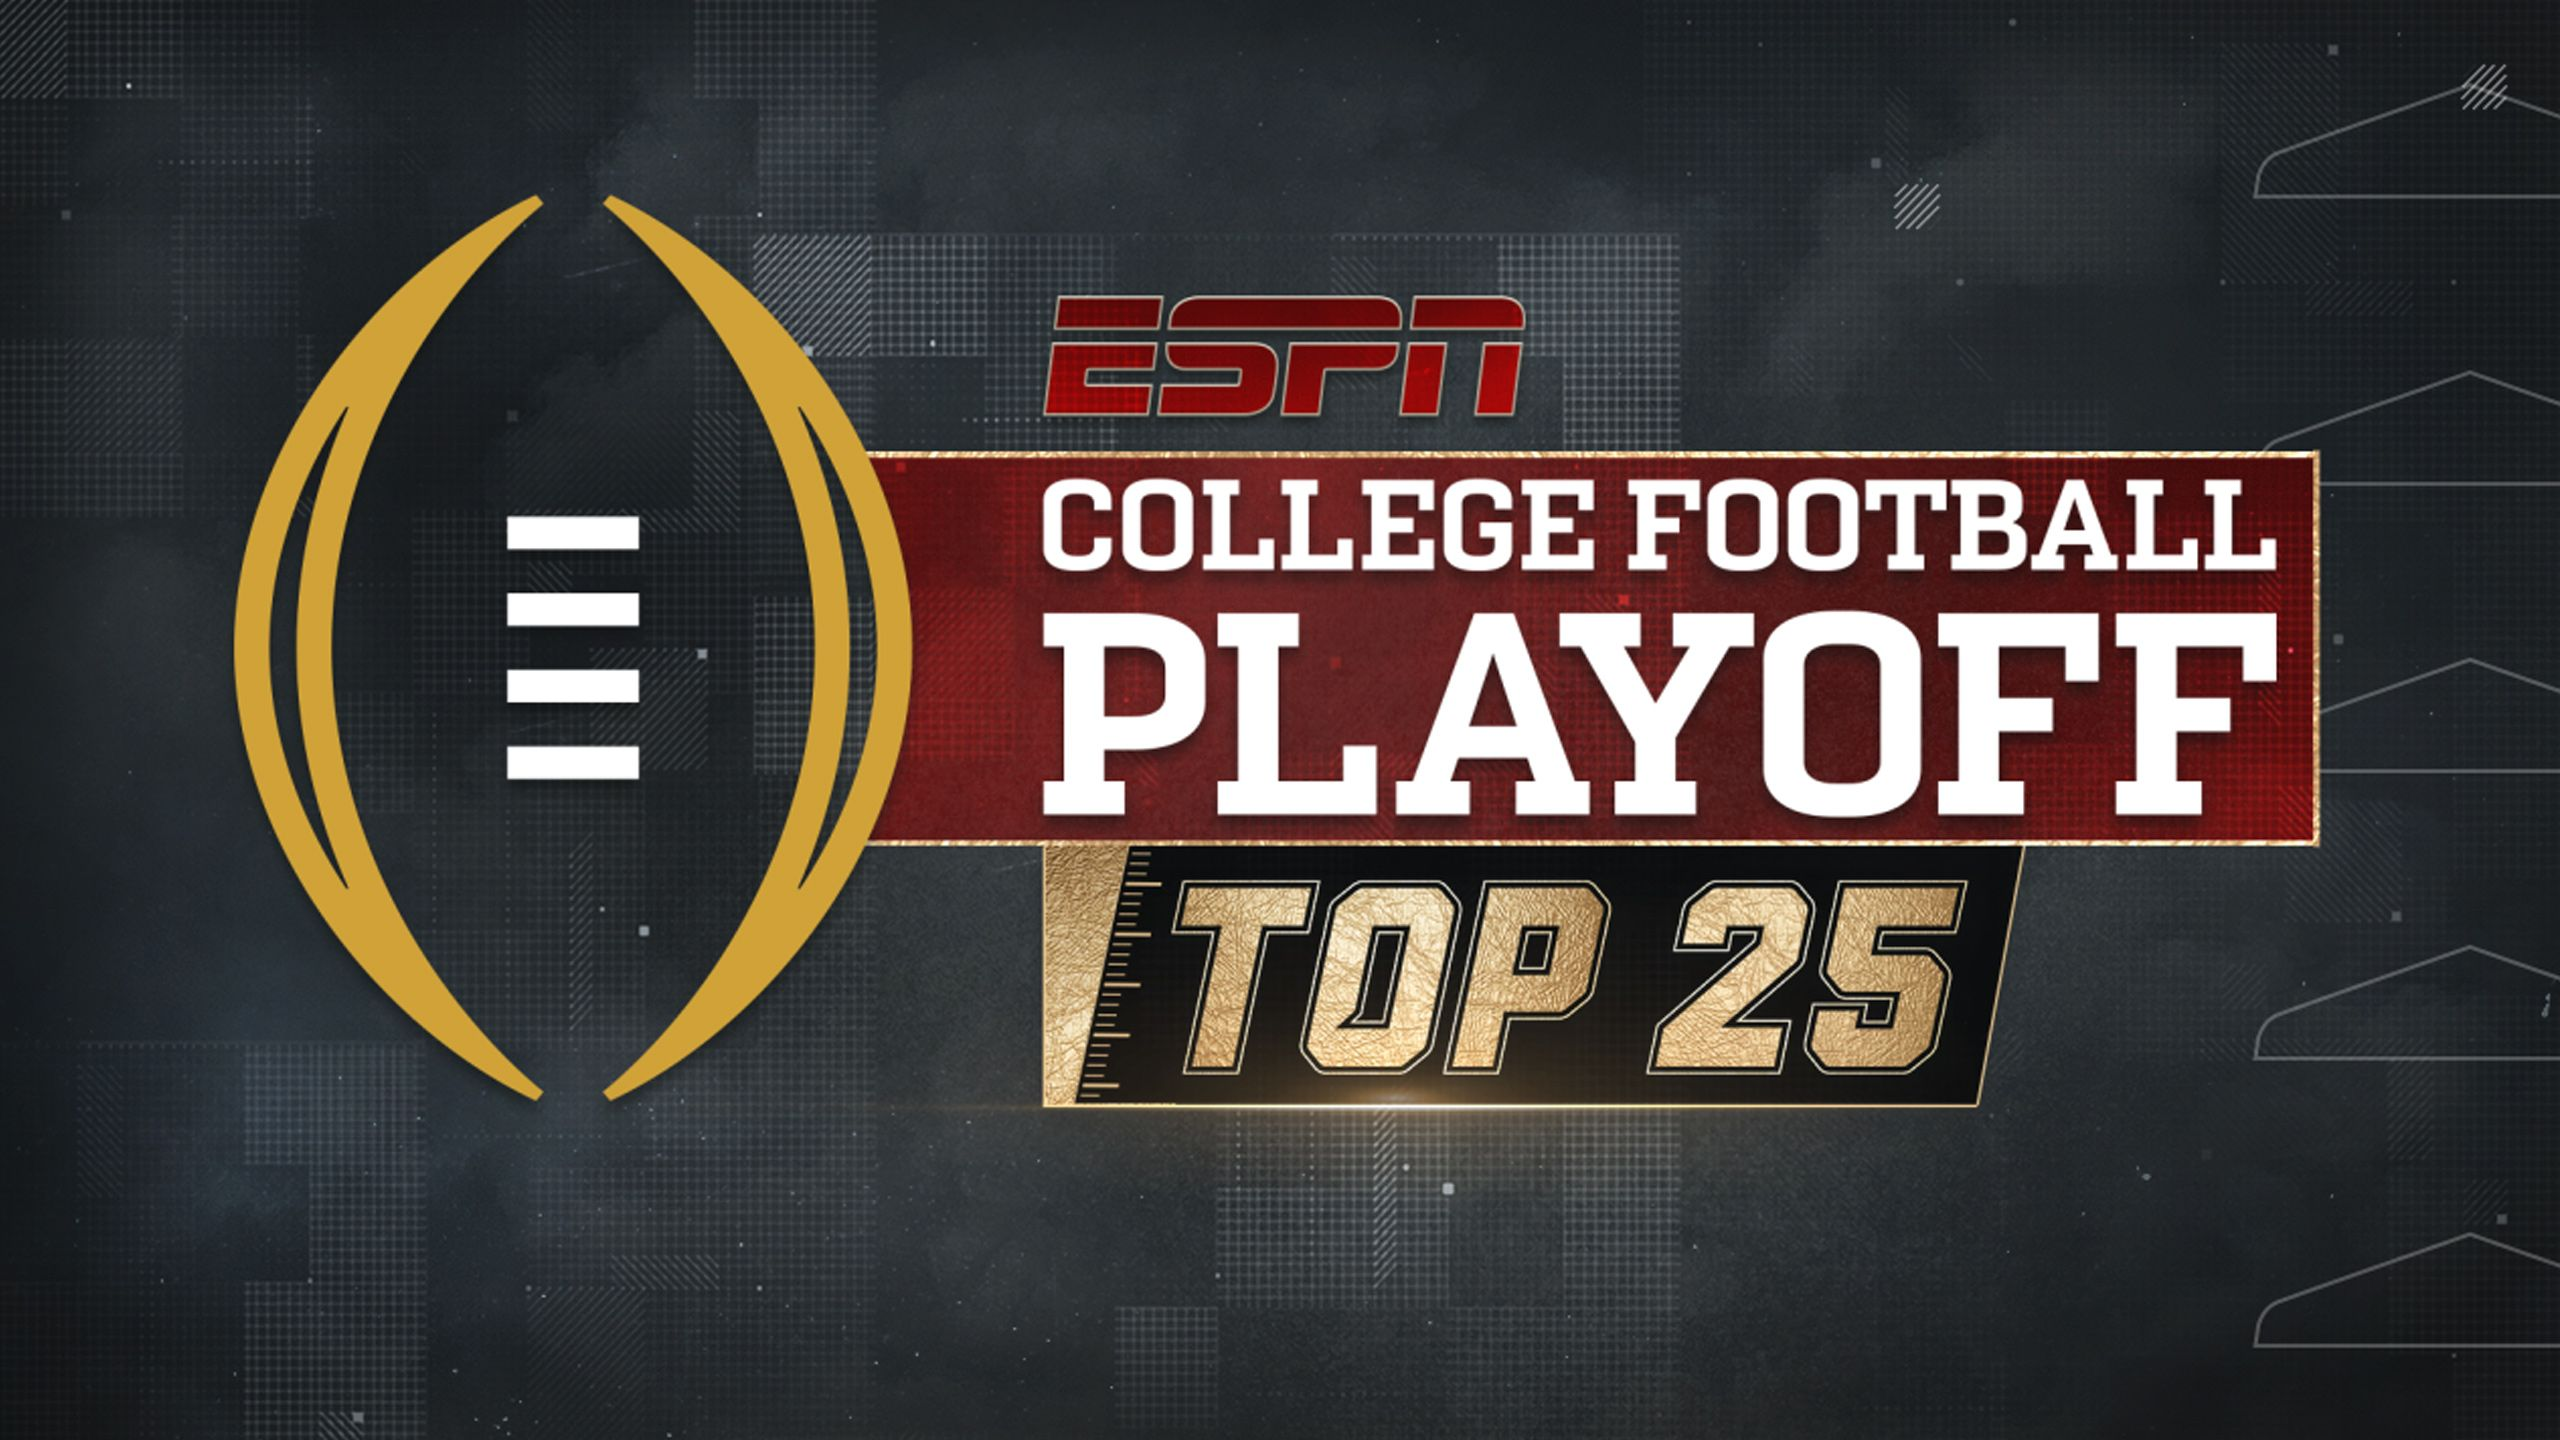 Tue, 10/17 - College Football Playoff: Top 25 Presented by Chick-fil-A